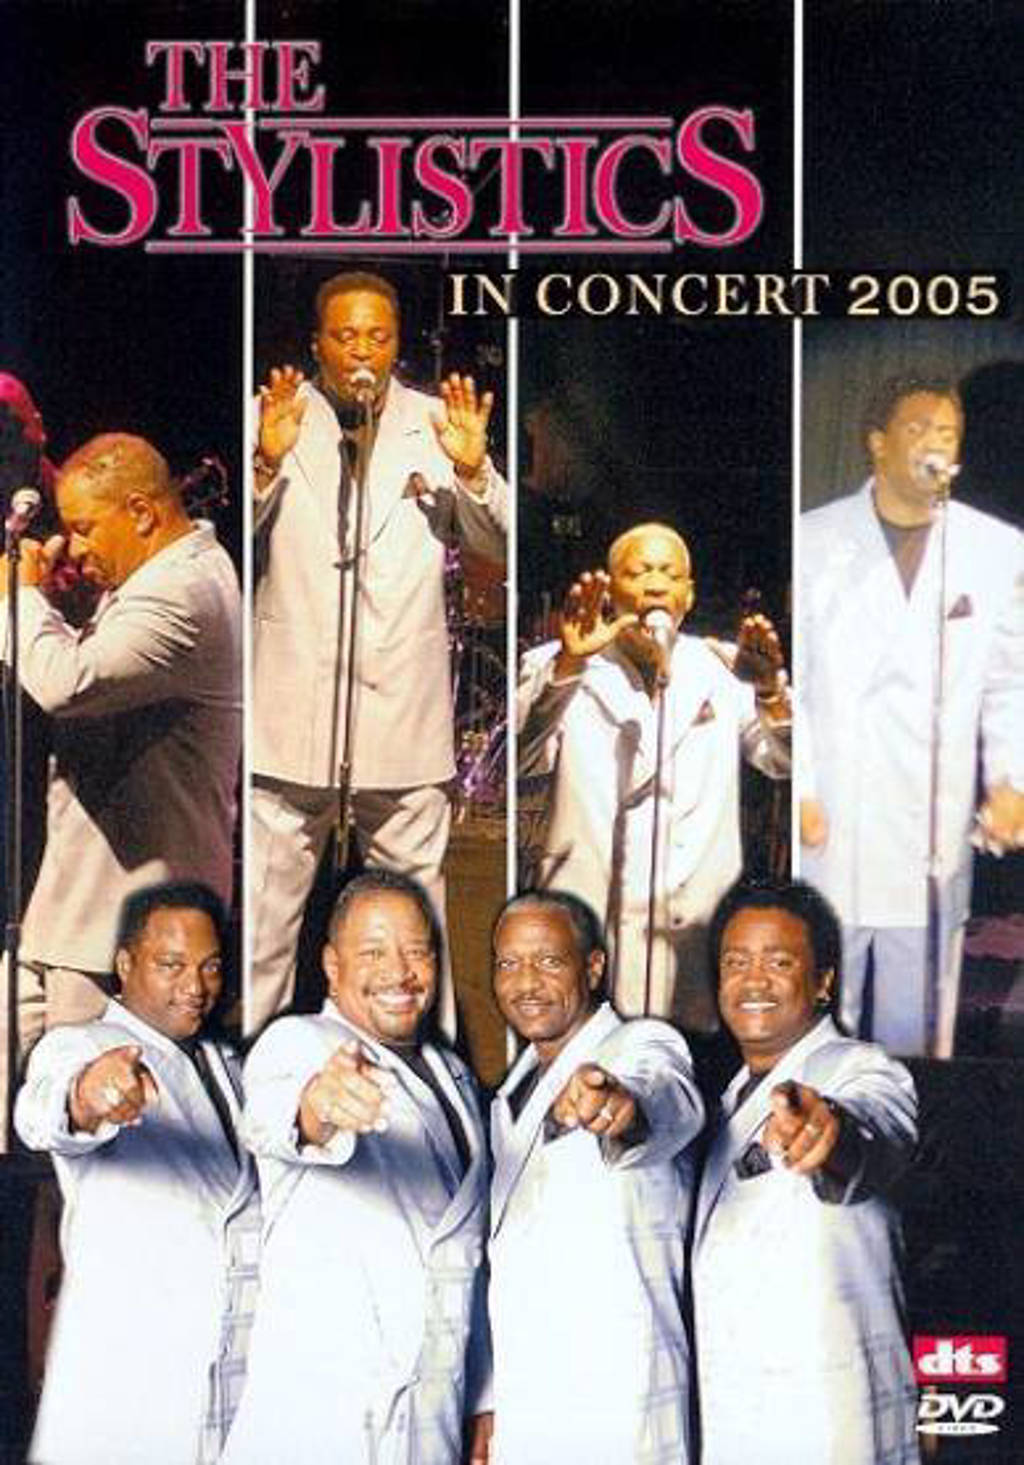 Stylistics - in concert 2005 (DVD)